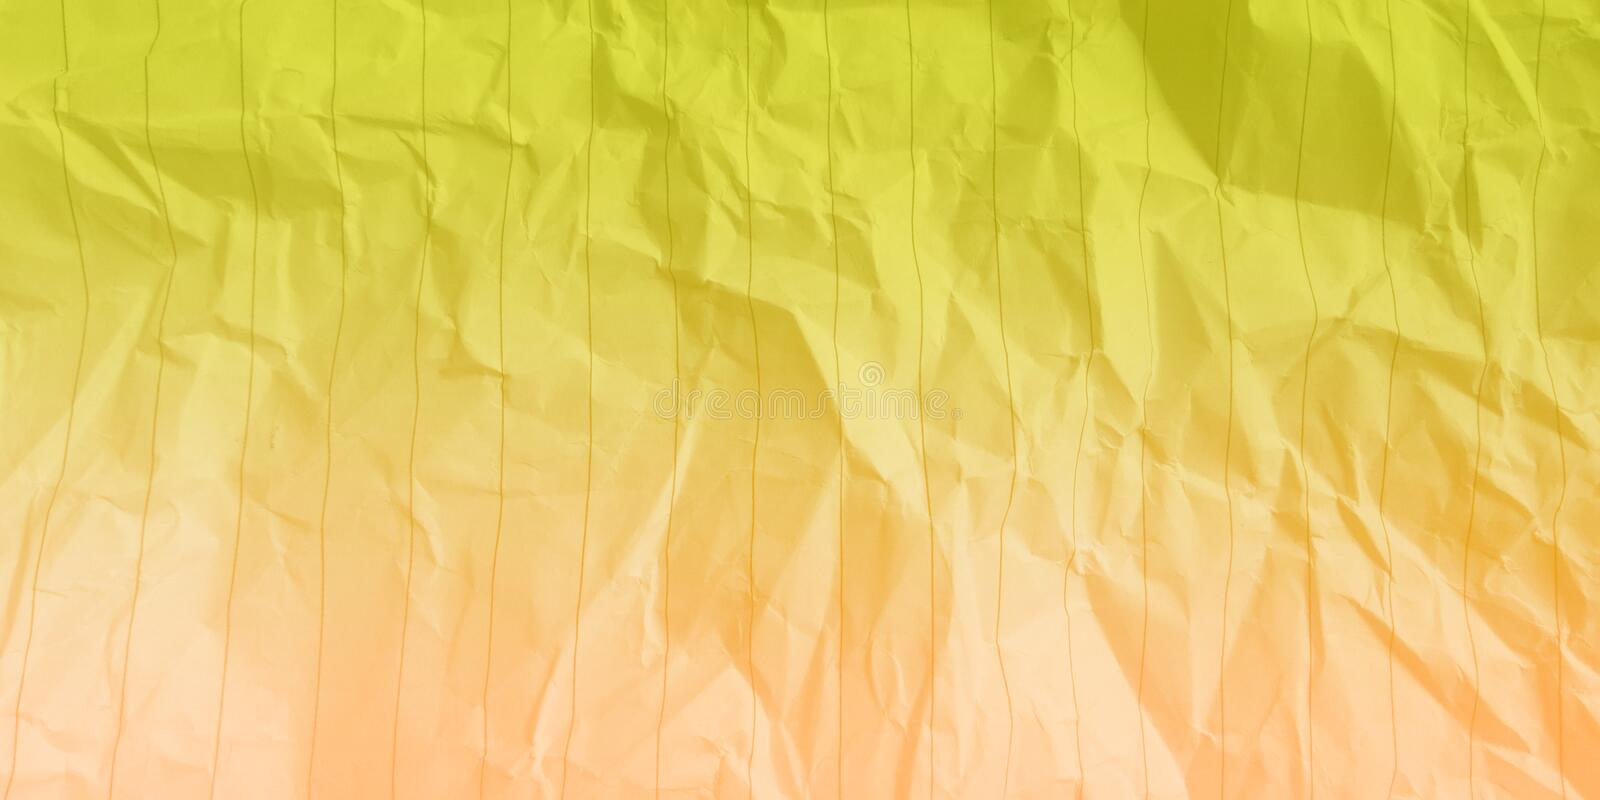 Abstract crumpled paper banana yellow sand color multi colors effects background. stock photography